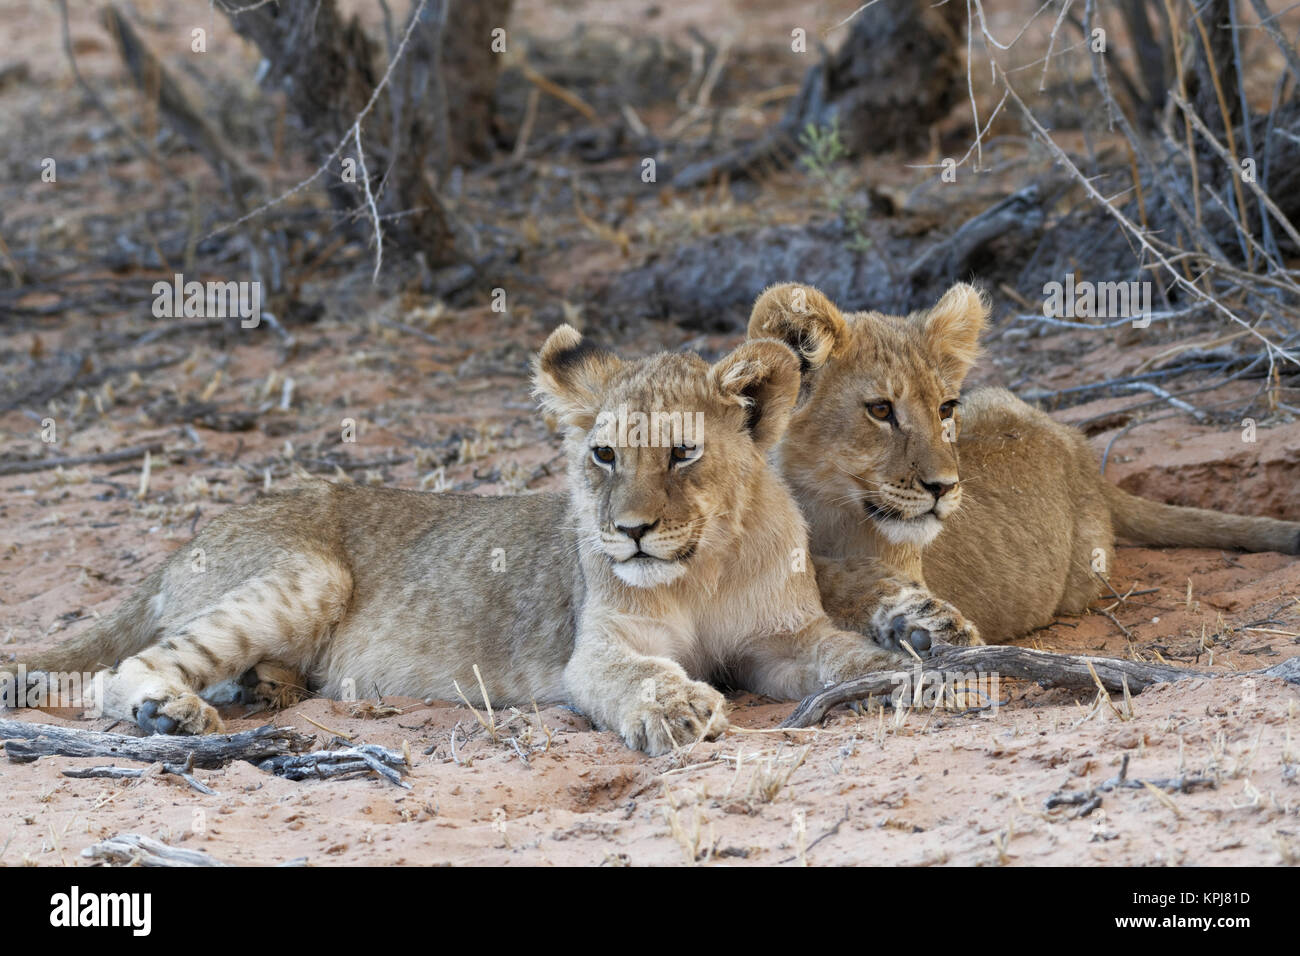 African lions (Panthera leo), two cubs lying on sand, Kgalagadi Transfrontier Park, Northern Cape, South Africa - Stock Image